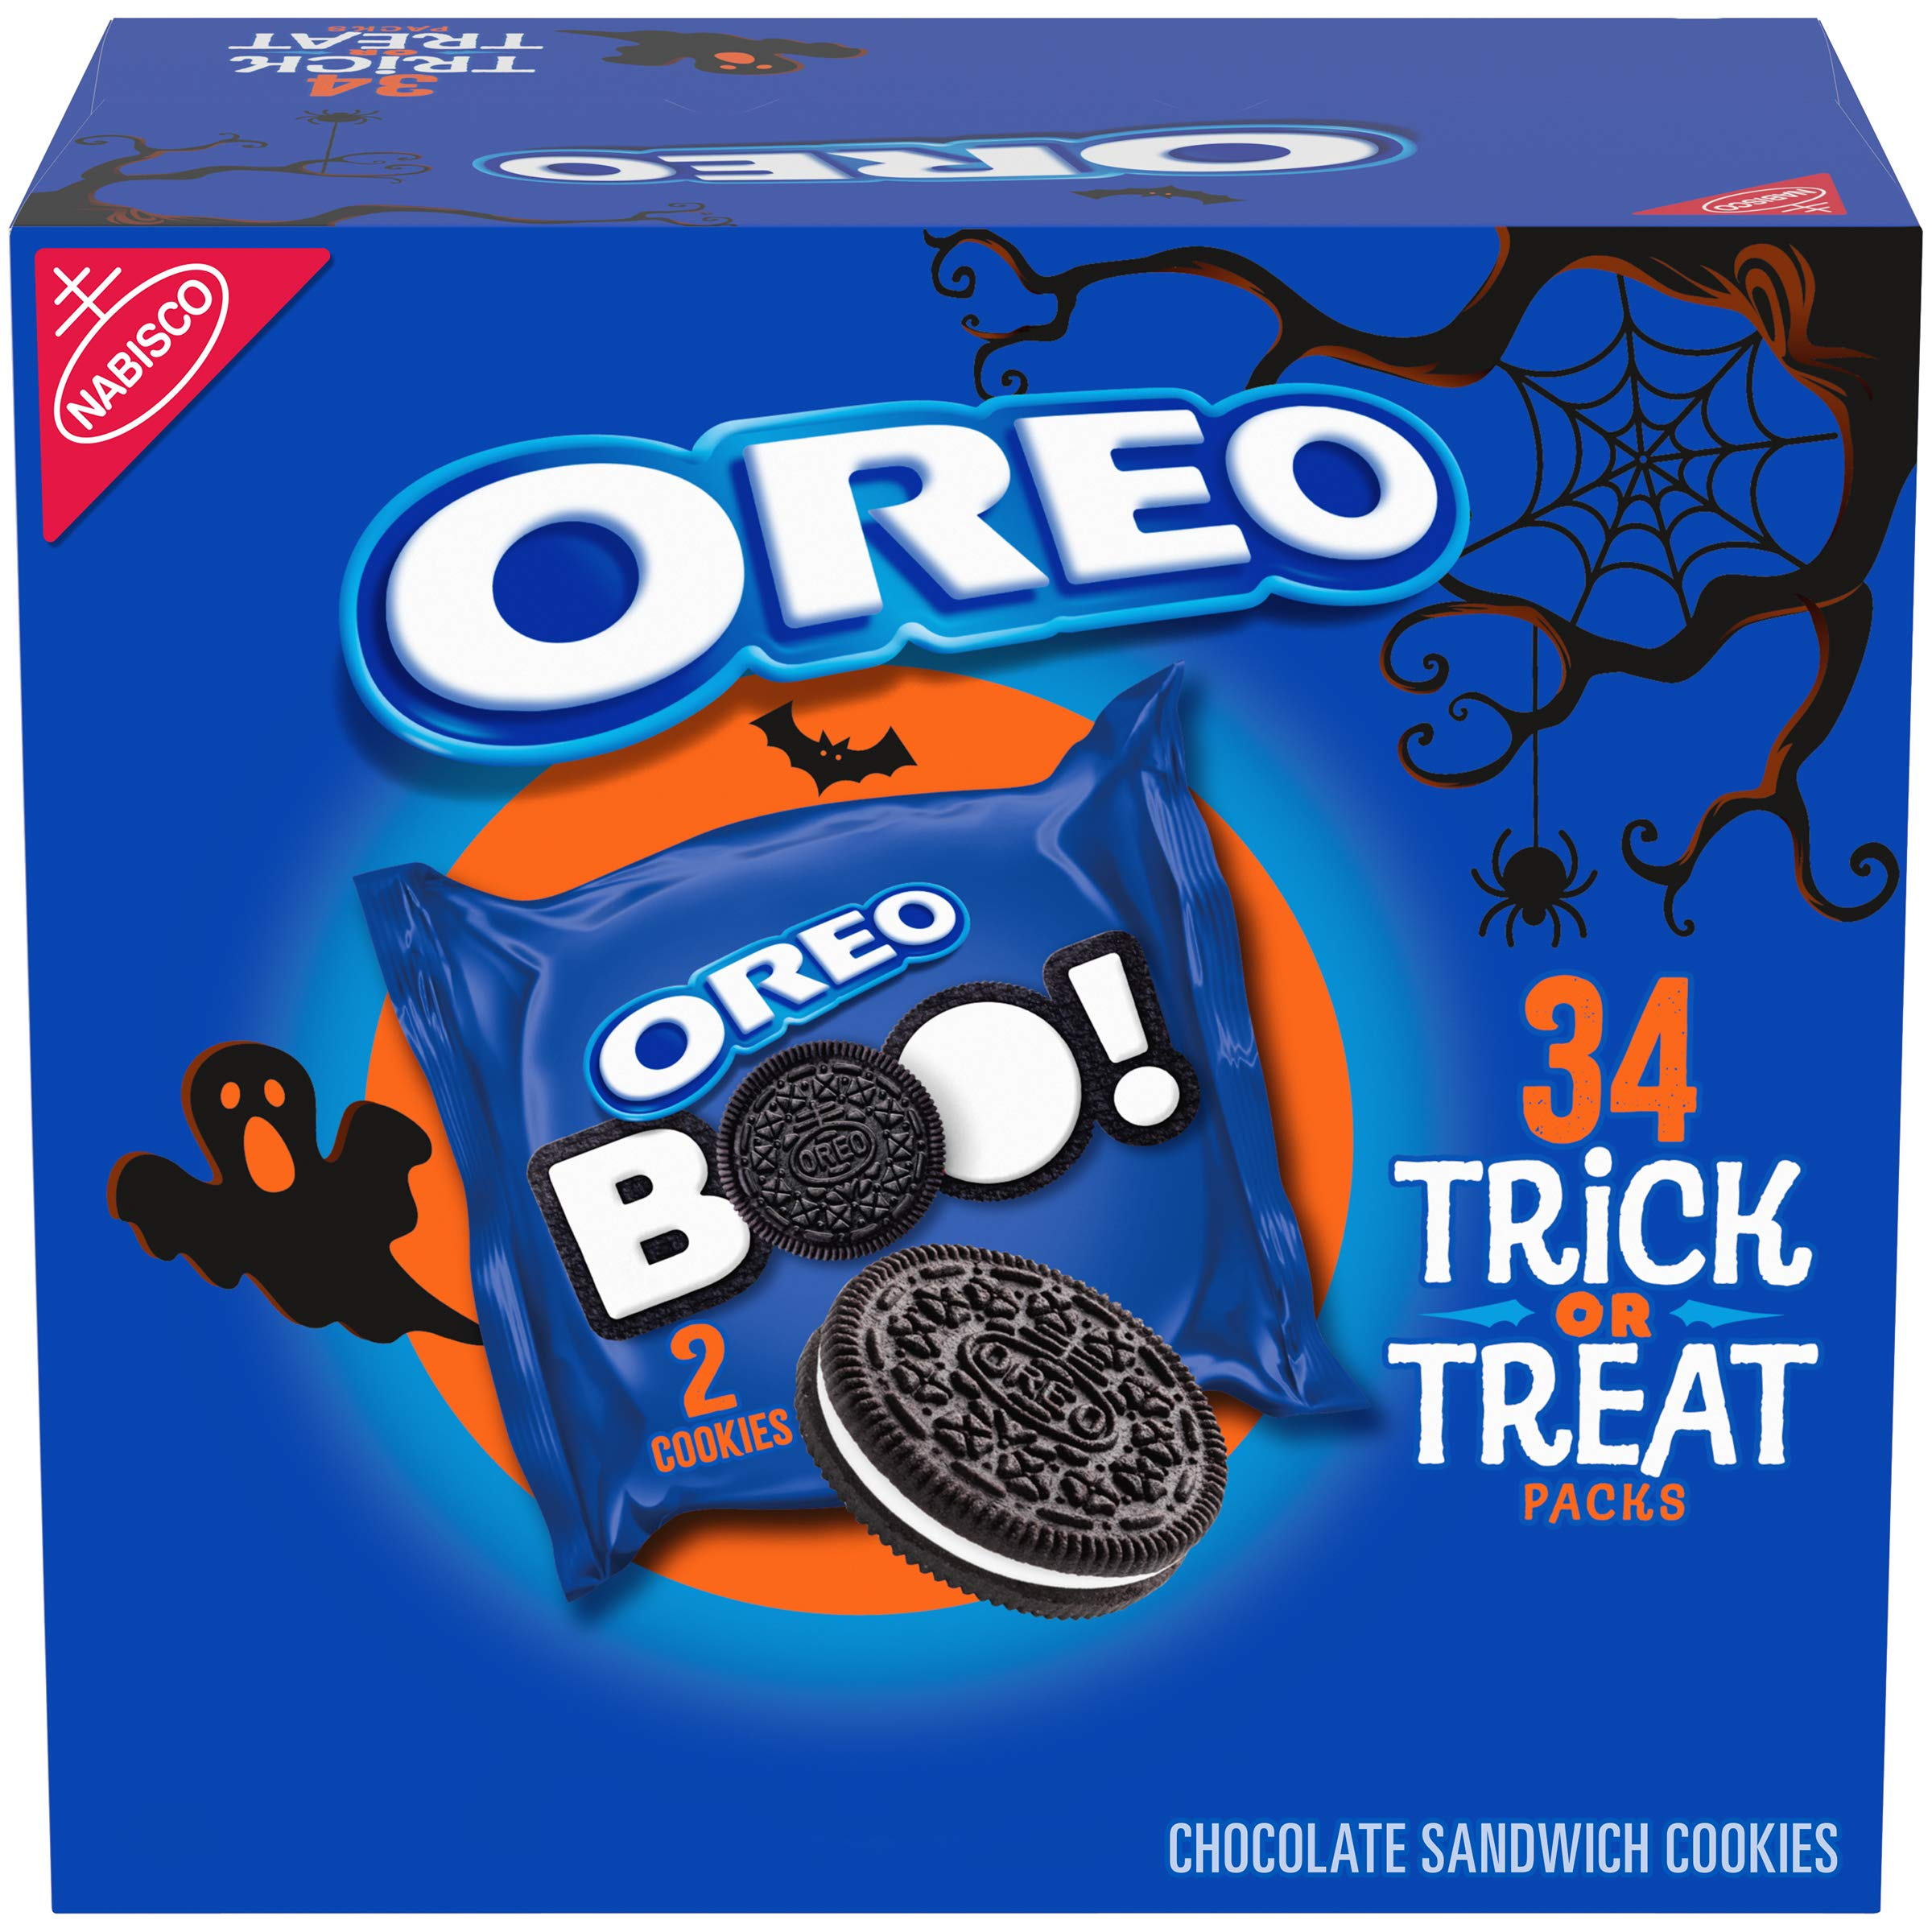 Oreo Chocolate Sandwich Cookies, Special Halloween Edition, 34 Count per pack, 26.52 Ounce by Oreo